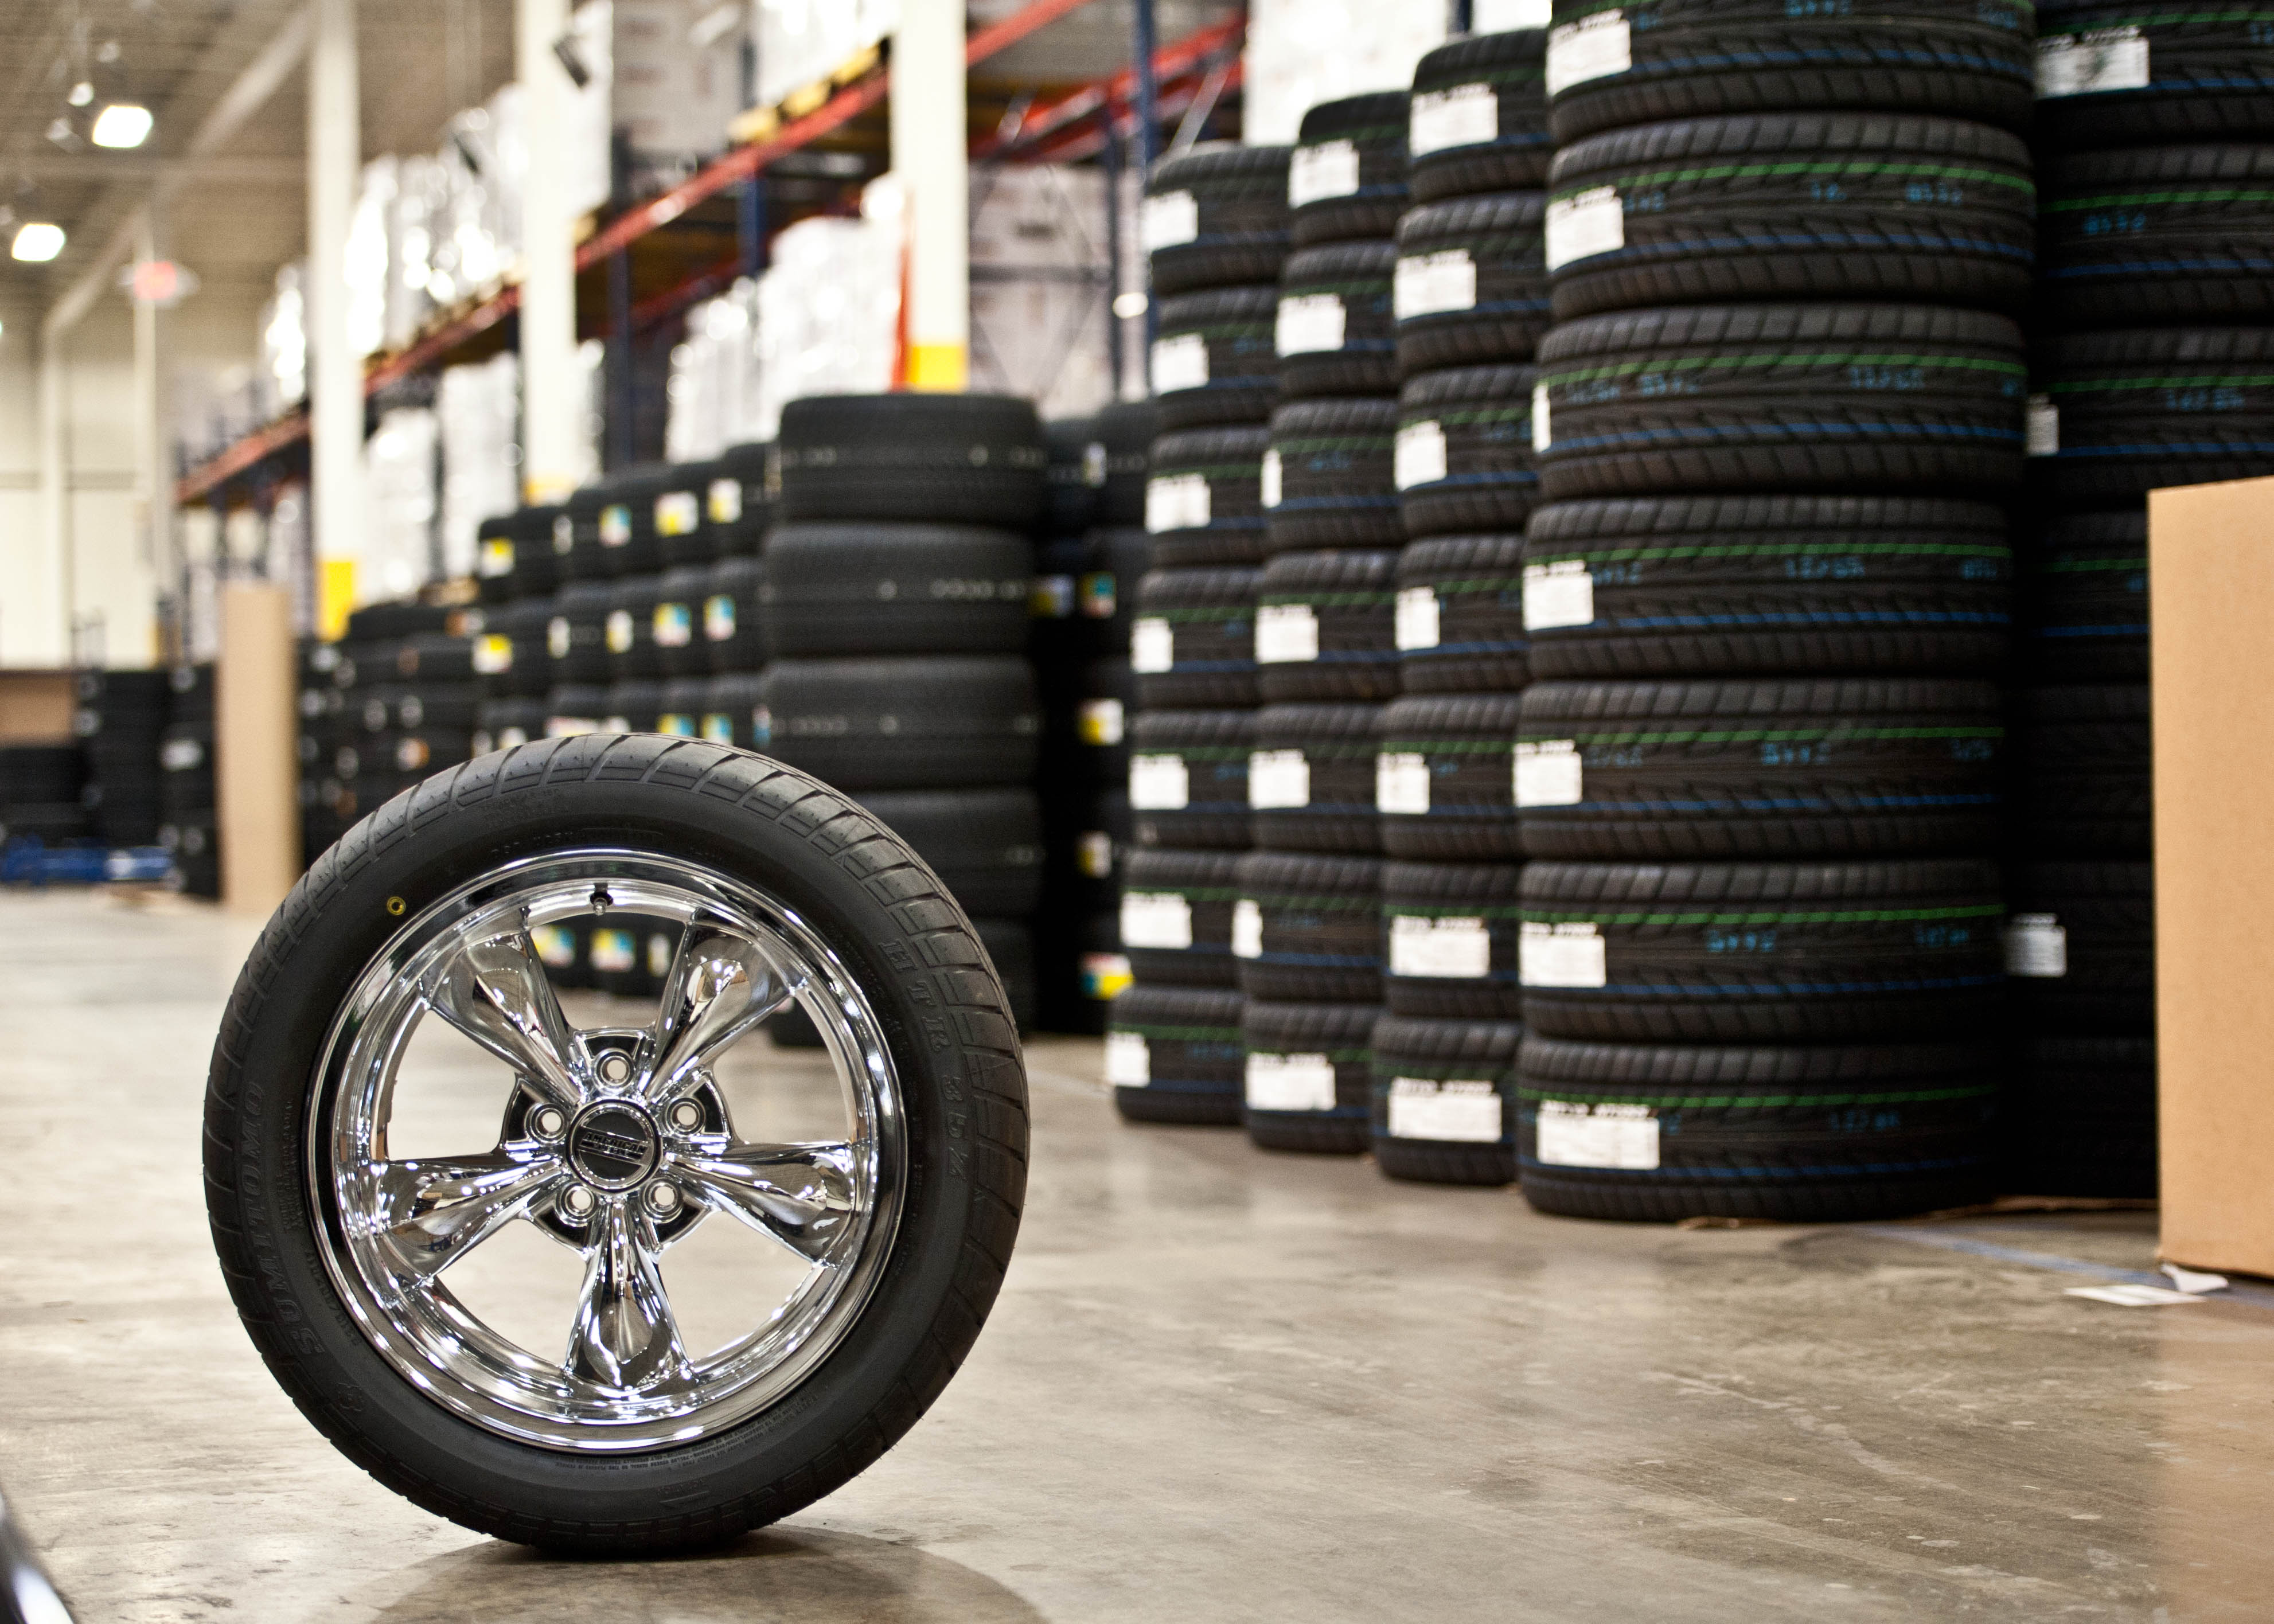 AmericanMuscle Chrome Wheel with Mounted Tire Waiting in the Warehouse